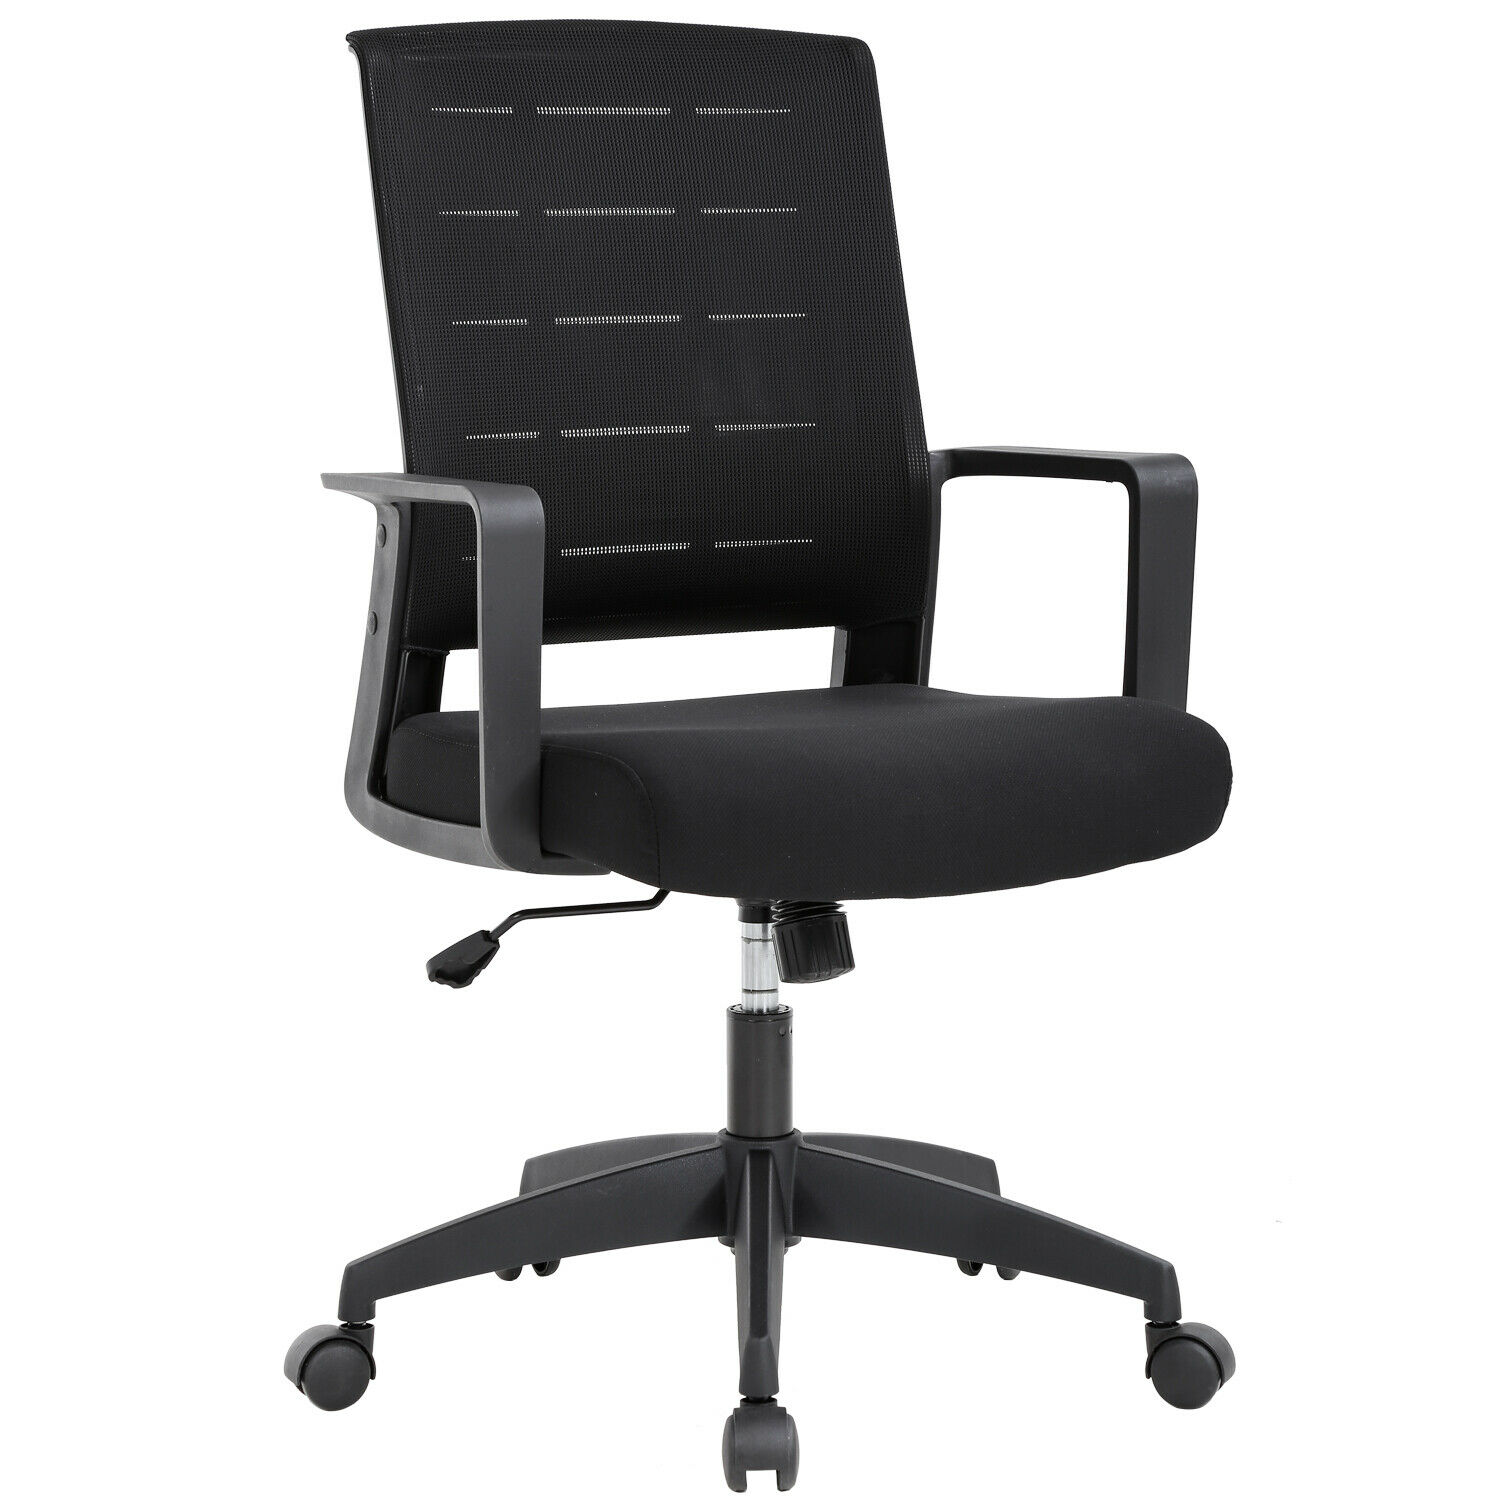 Ergonomic Office Chair Desk Chair Mesh Computer Chair with Lumbar Support  Executive Rolling Swivel Adjustable Mid Back Task Chair for Women Adults,  ...